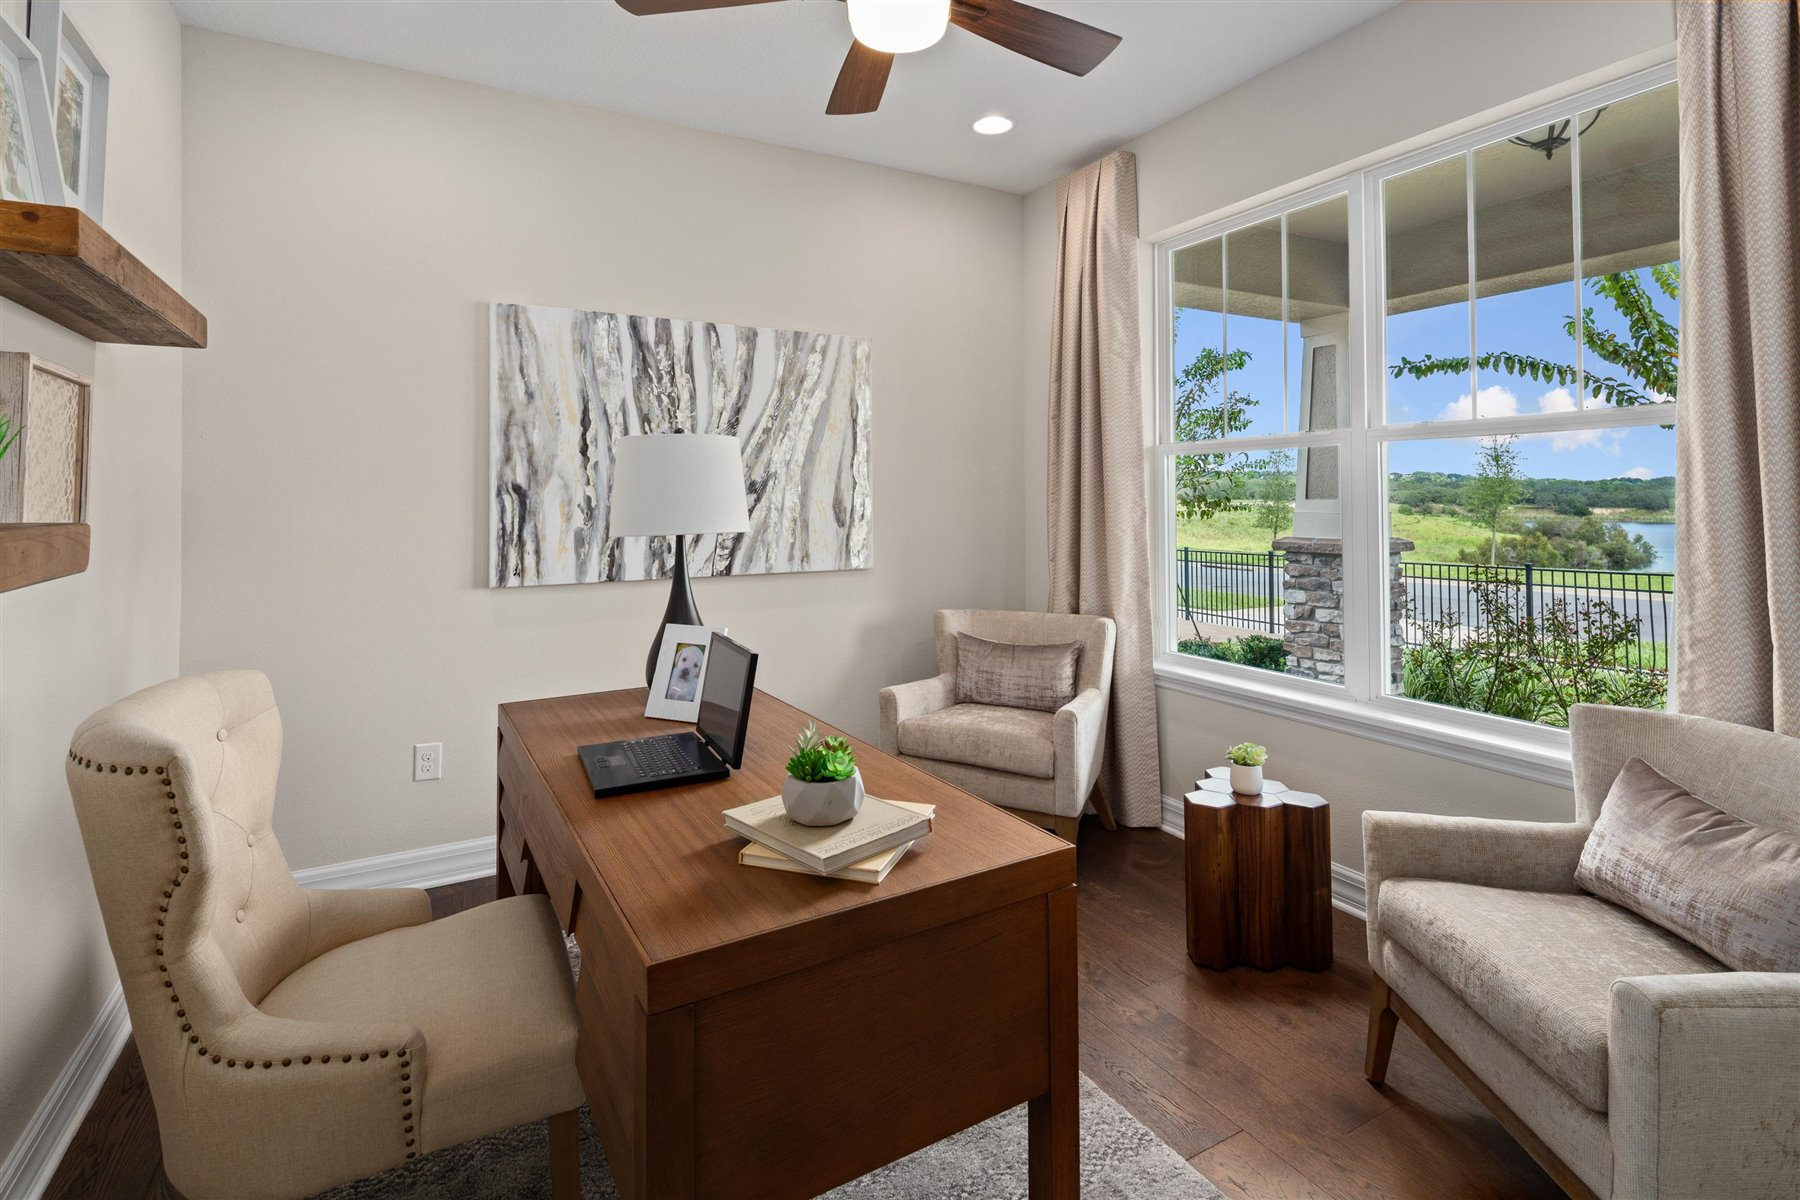 Griffin Plan Study Room at Waterbrooke in Clermont Florida by Mattamy Homes